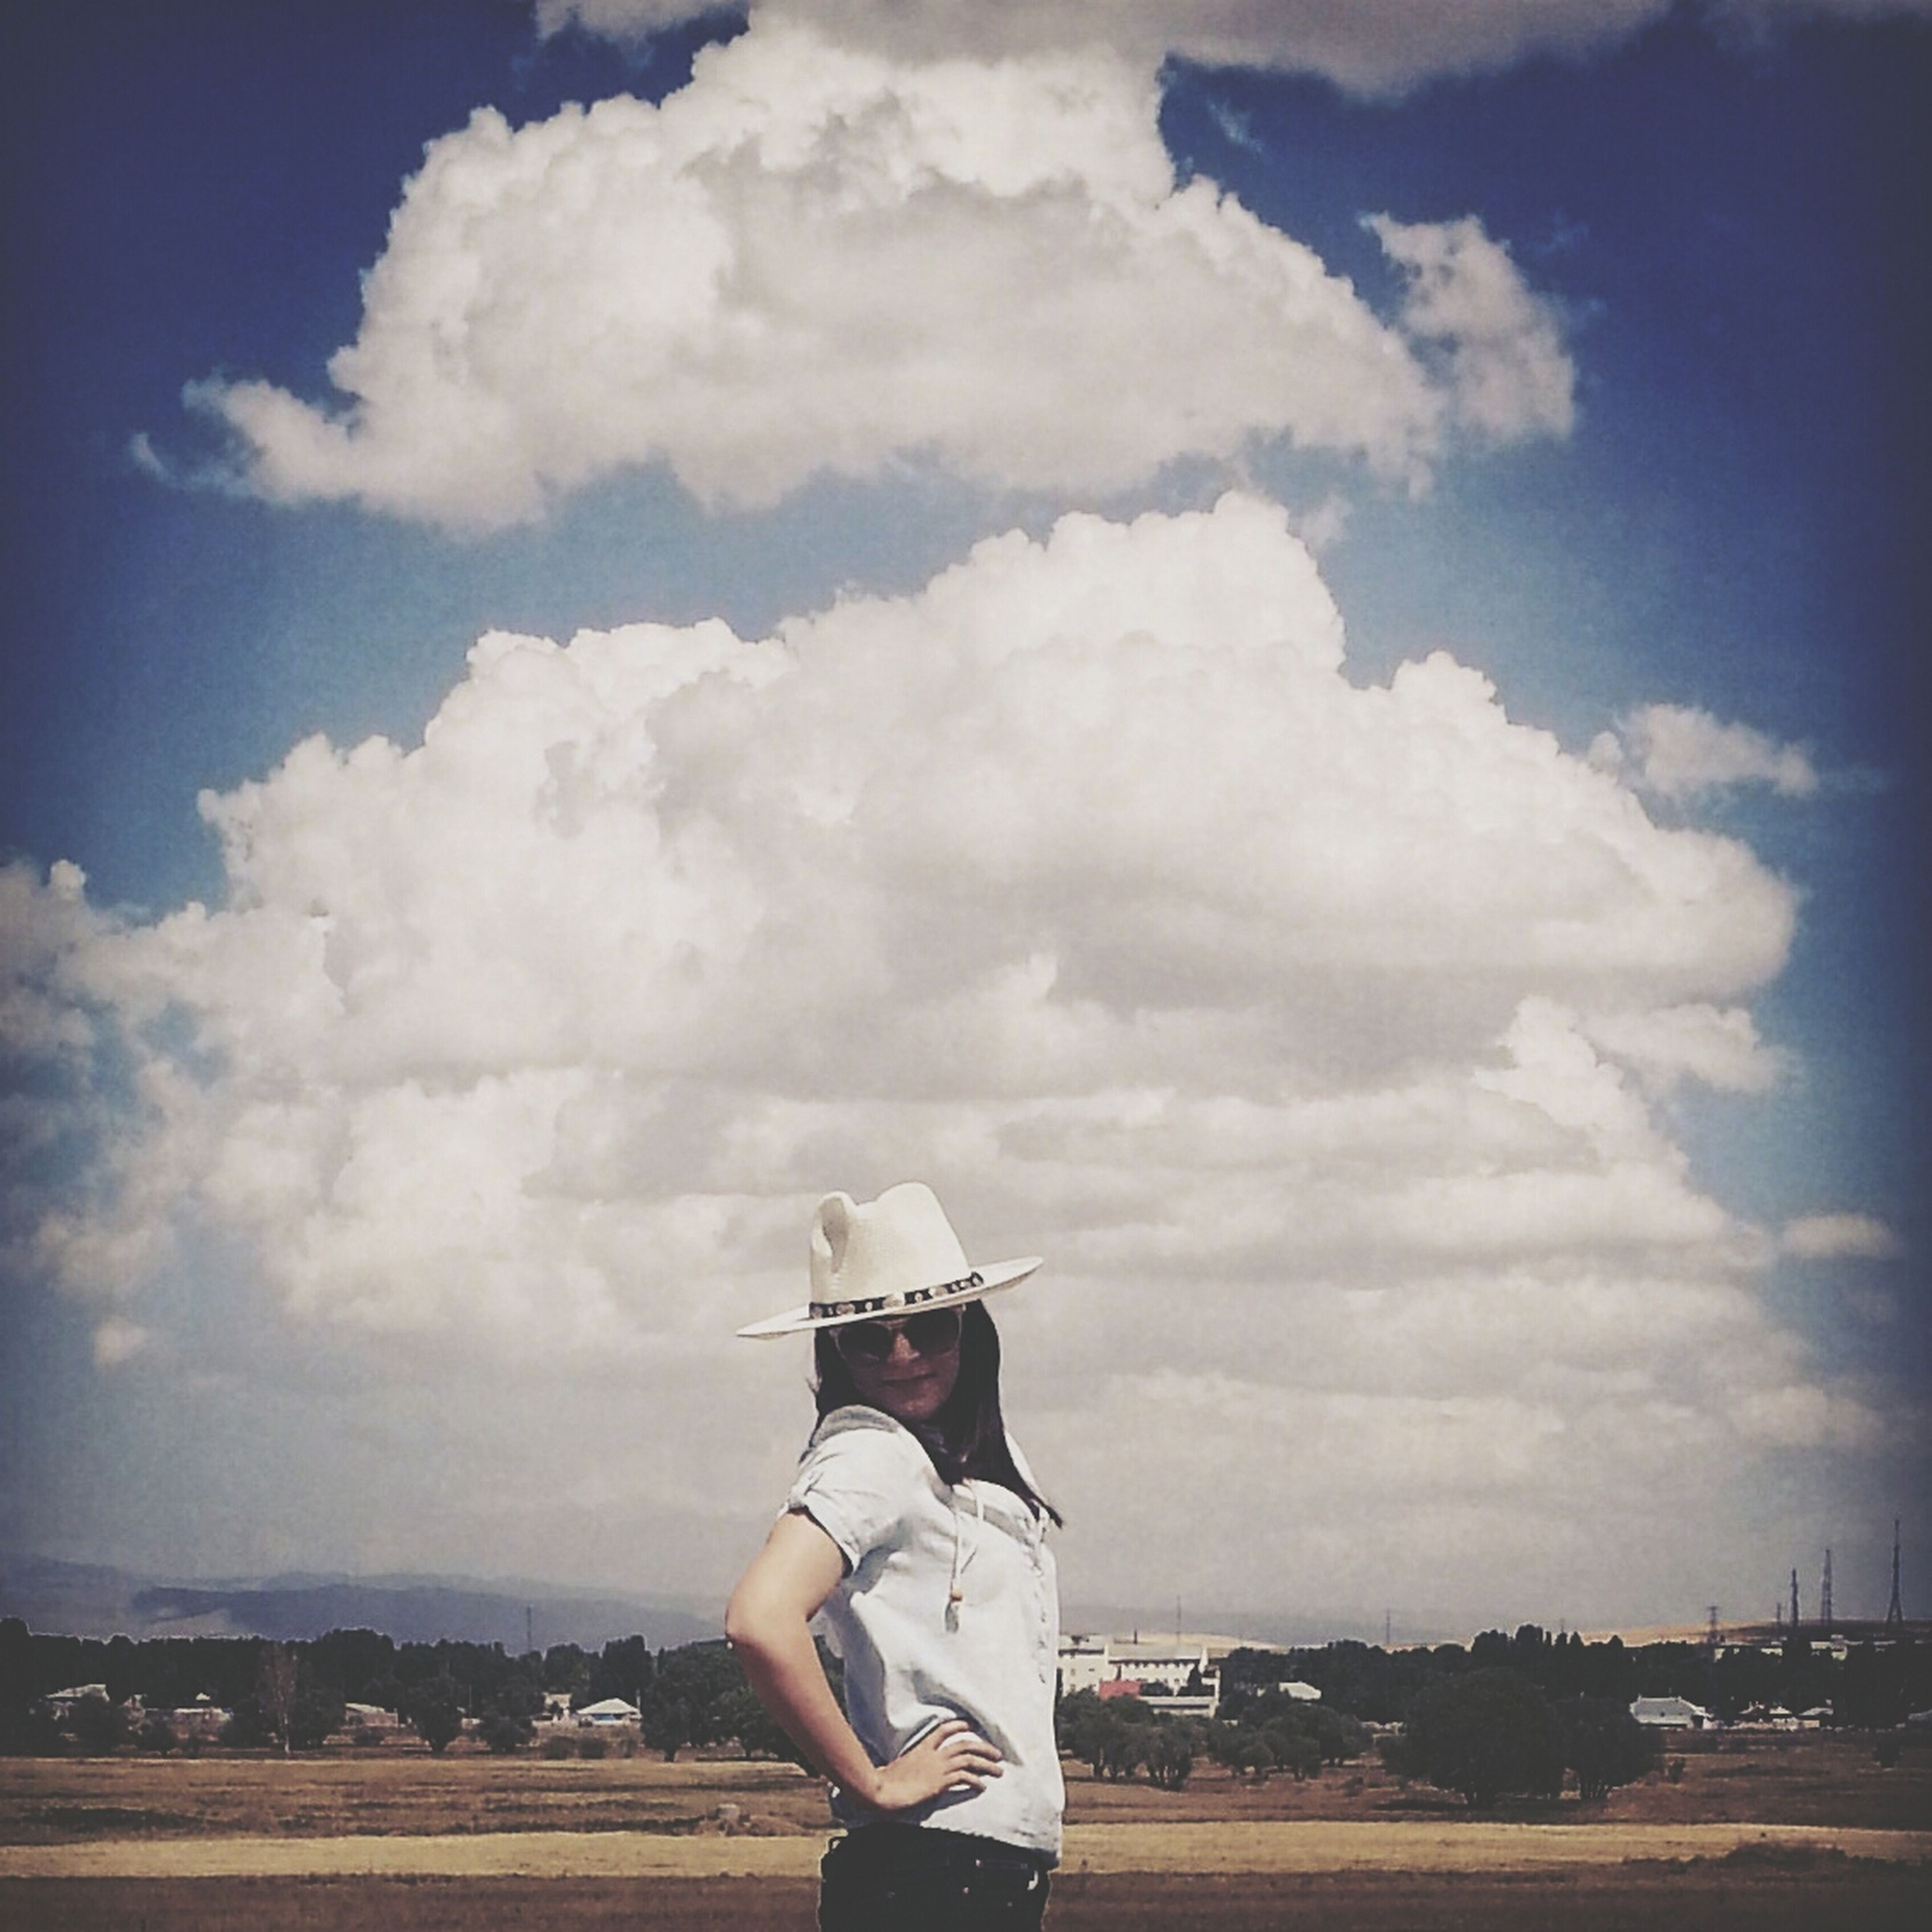 sky, cloud - sky, cloud, cloudy, leisure activity, day, lifestyles, landscape, rear view, casual clothing, outdoors, field, standing, building exterior, nature, built structure, full length, transportation